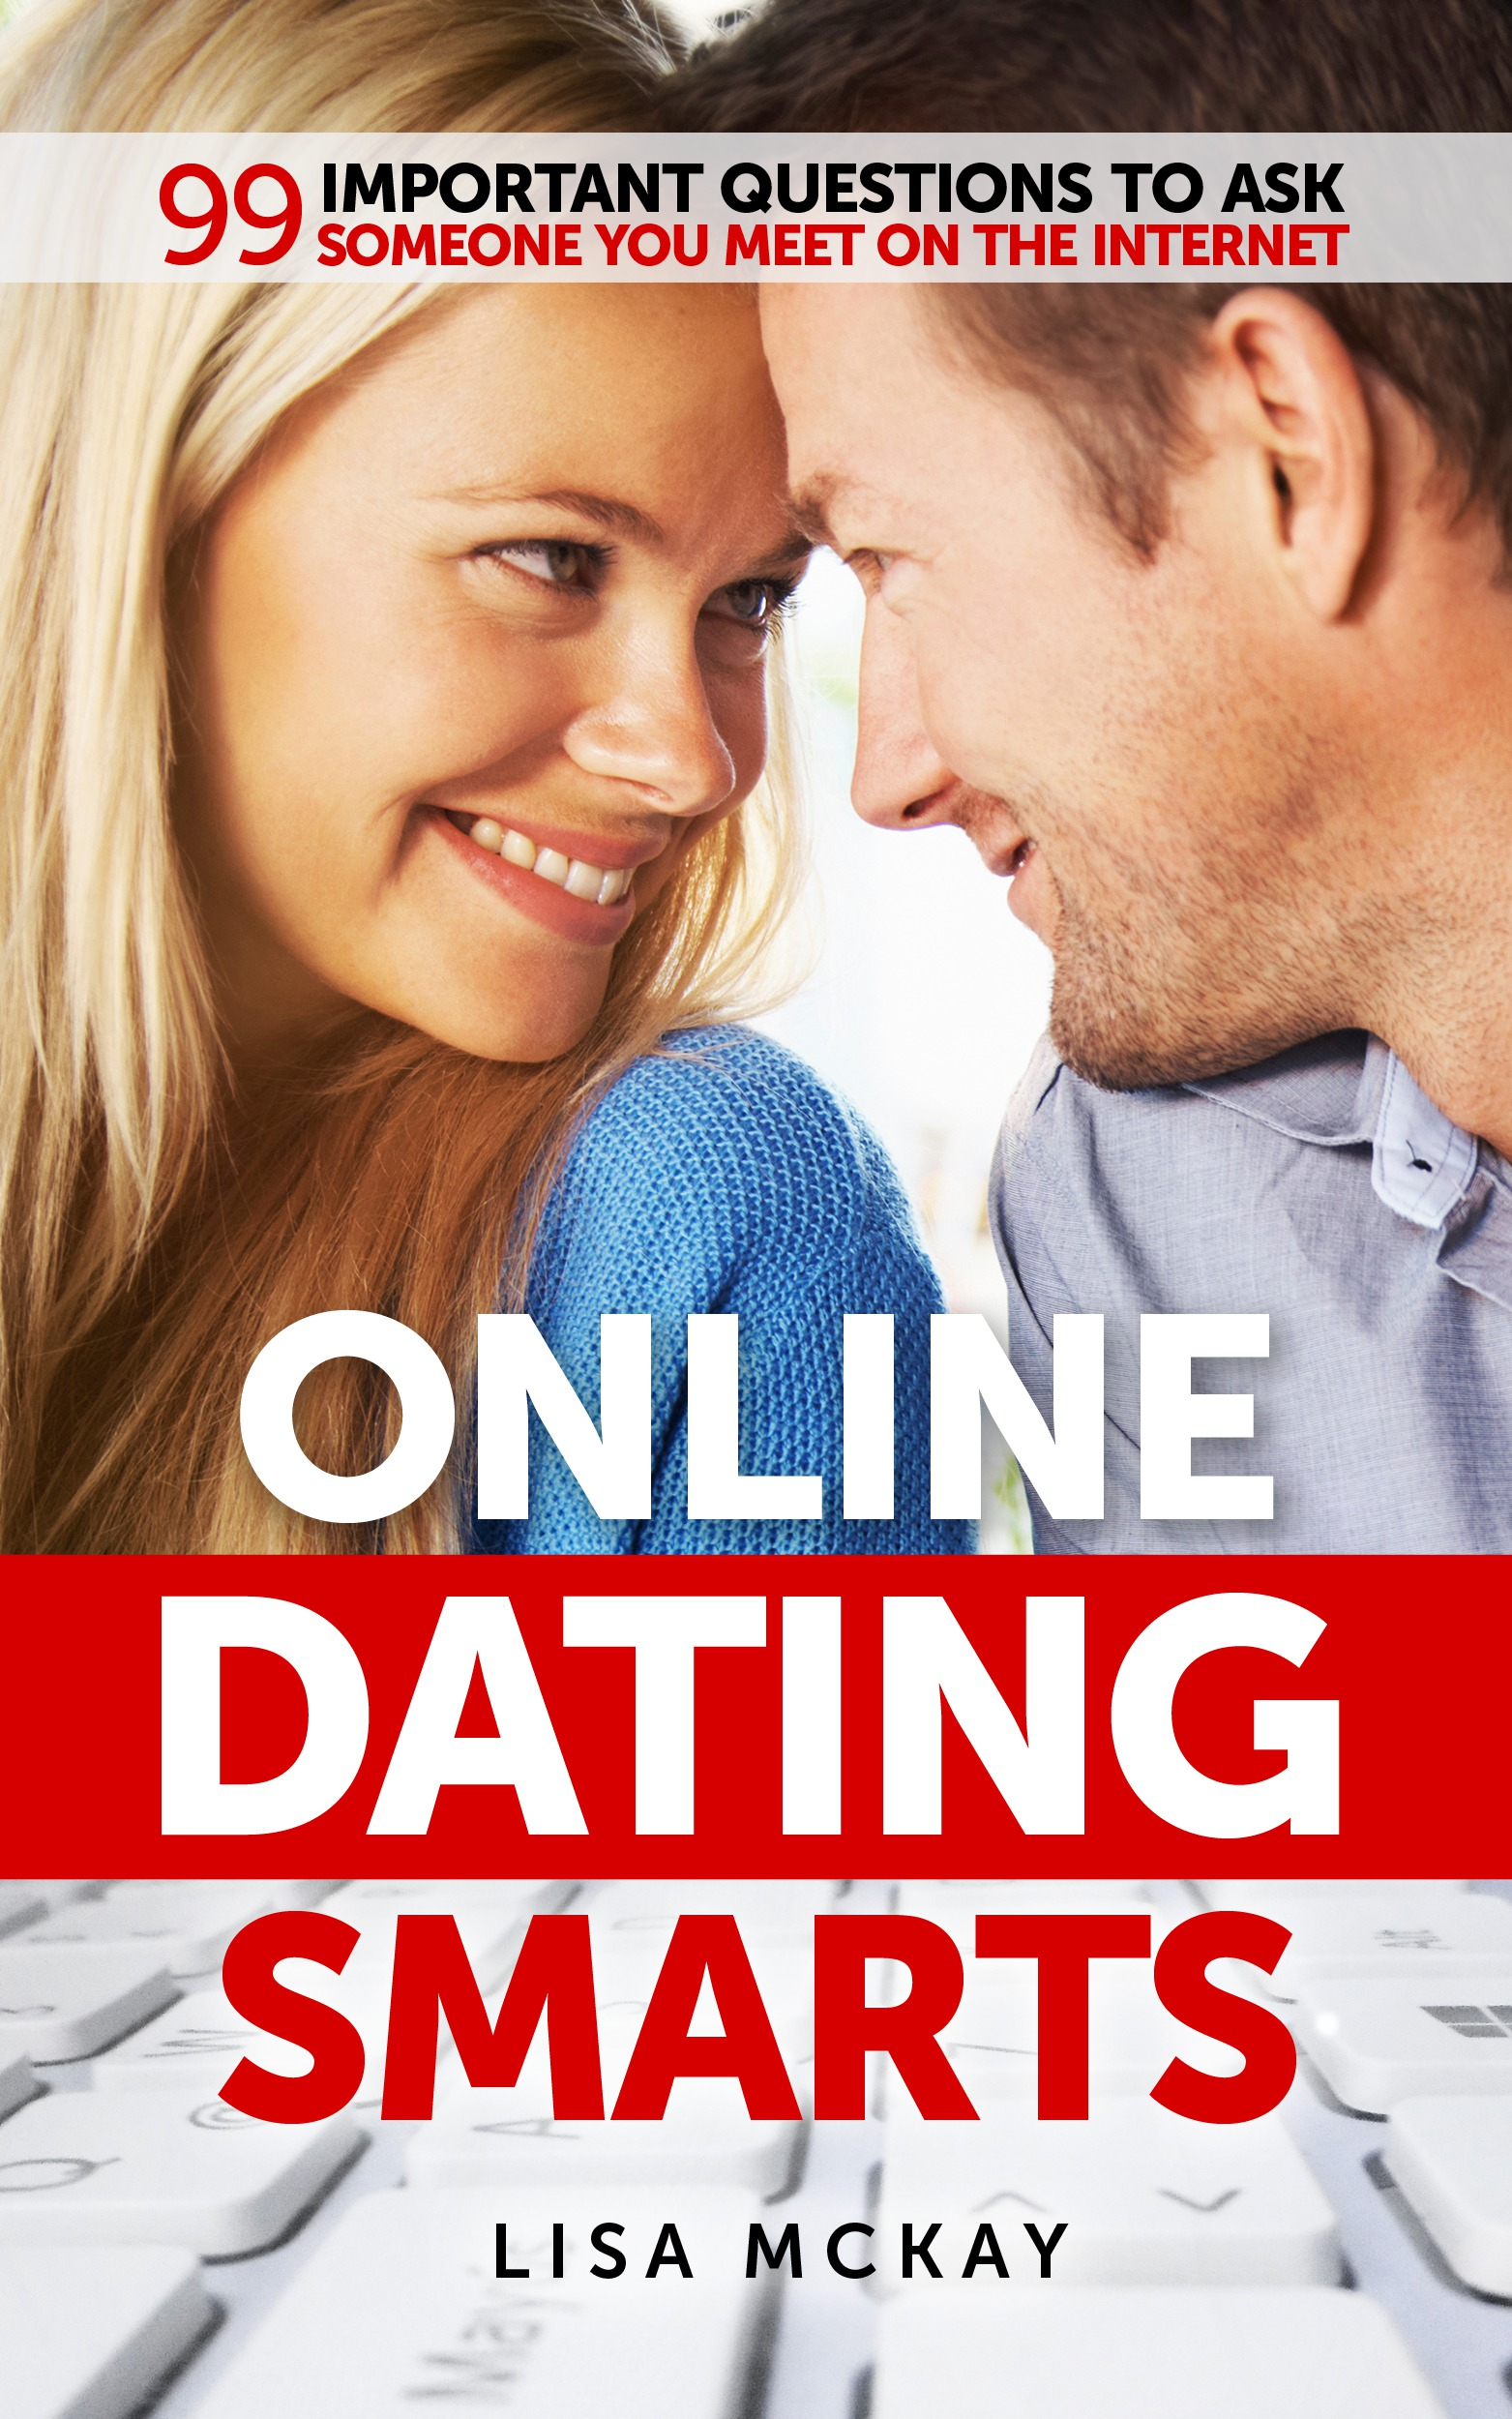 when to meet in person online dating When searching for mr or ms right, online dating is now so widely accepted that   this stuff can lead to learning who the person really is  the first date to about  one hour, and always meet in a public place during the day.